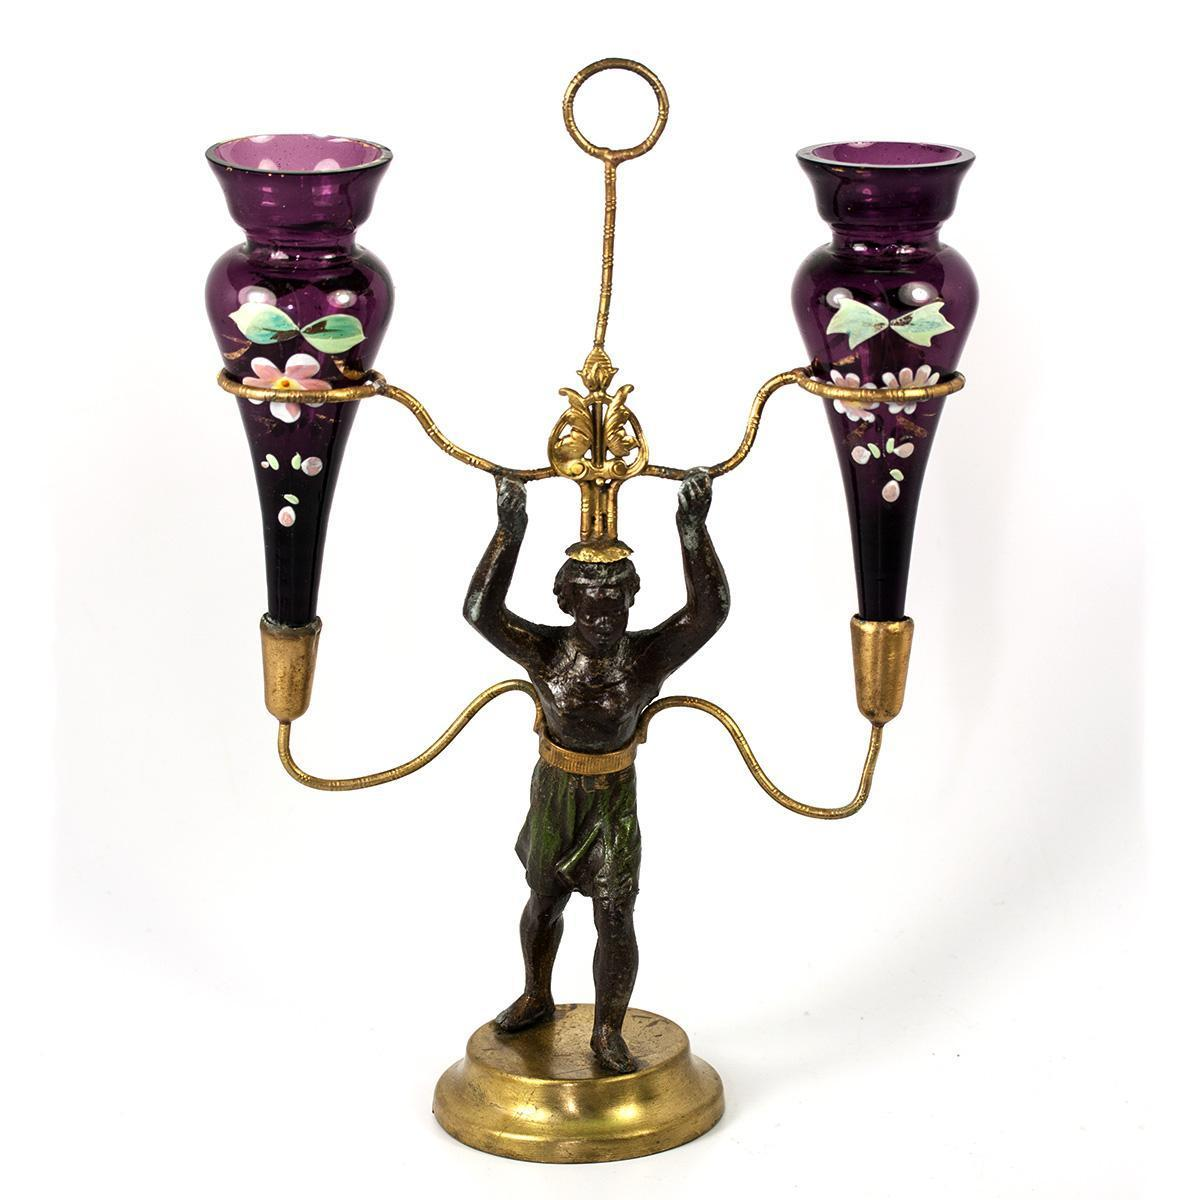 Antique French Blackamoor is an Epergne Stand, Enameled Amethyst Glass Vase